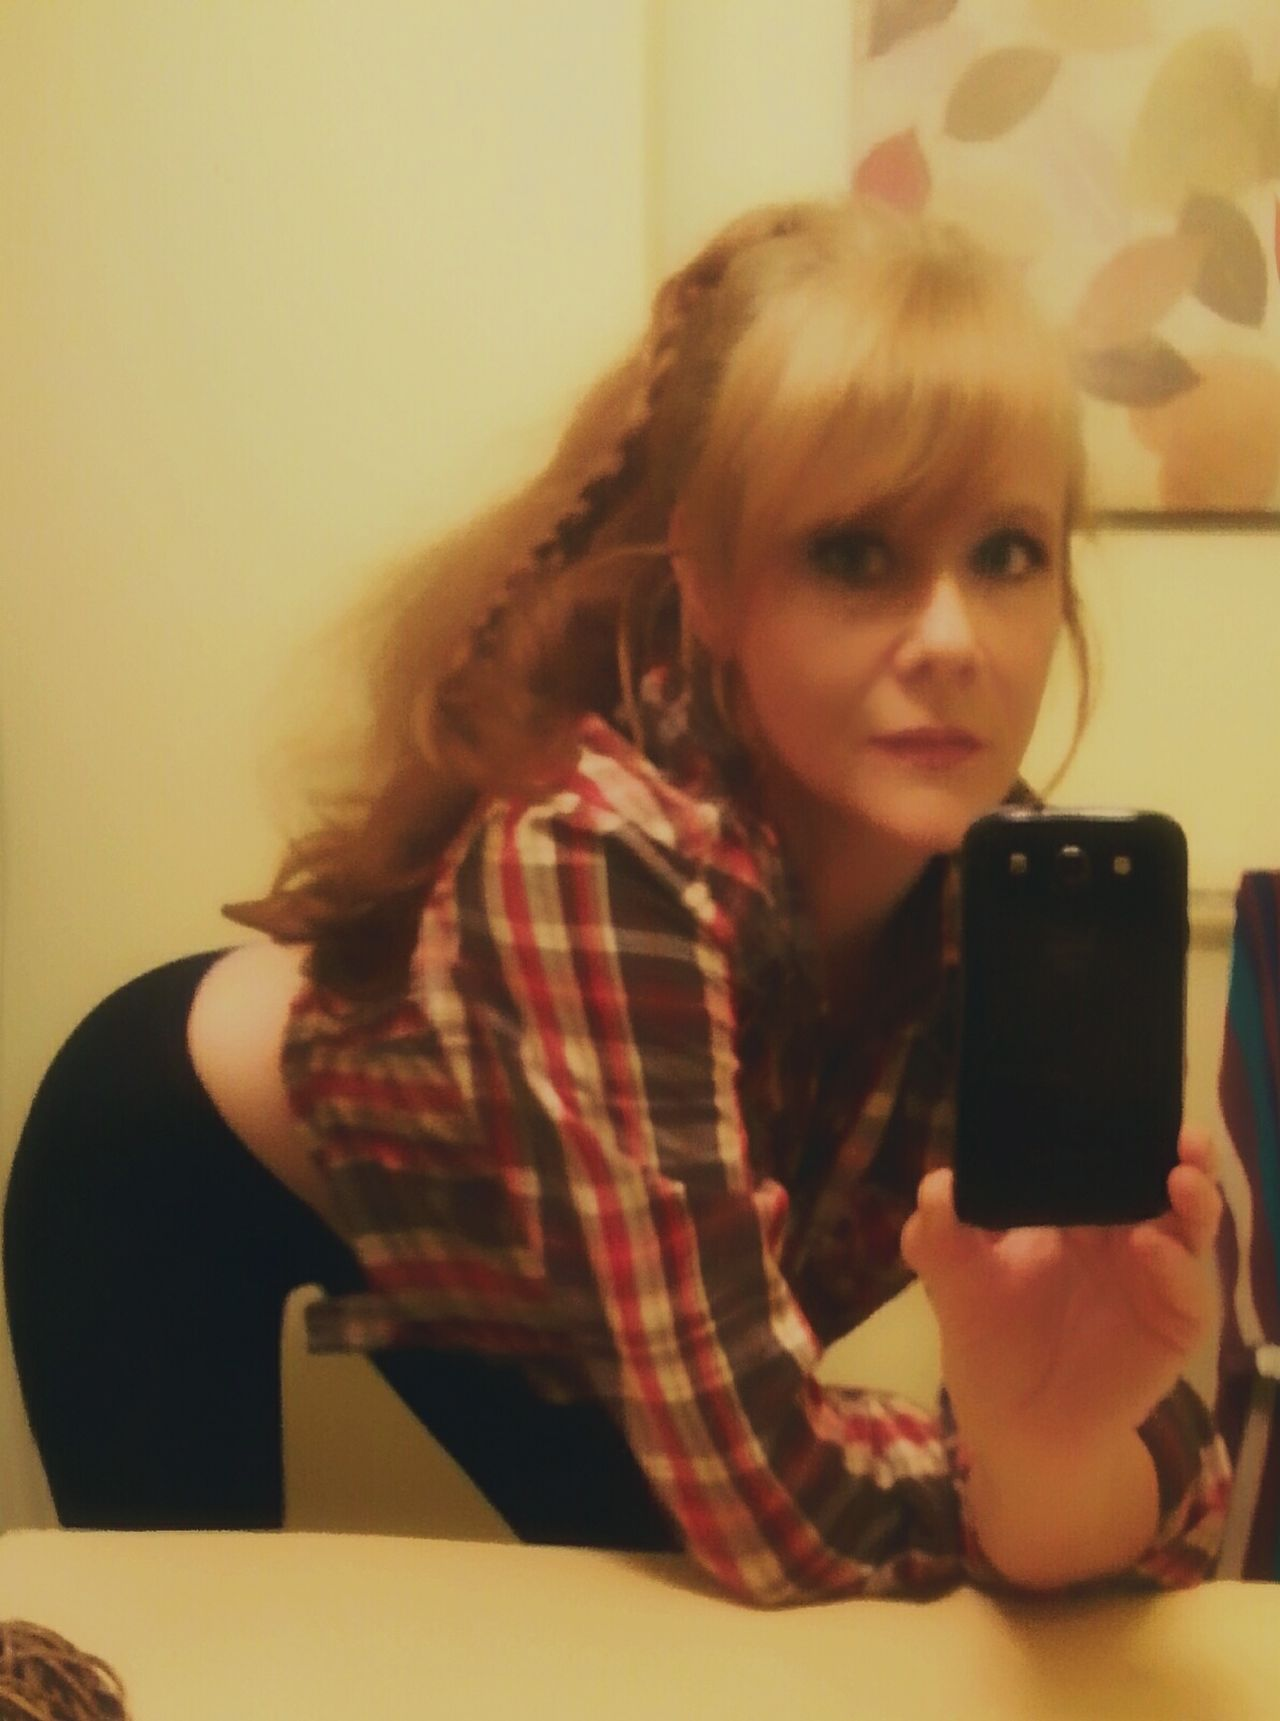 That's Me Hi! Flannel Shirt Ginger Redhead Longhair Sexyme Selfietime Mirrorselfie Checking In Strawberryblond Sexywoman